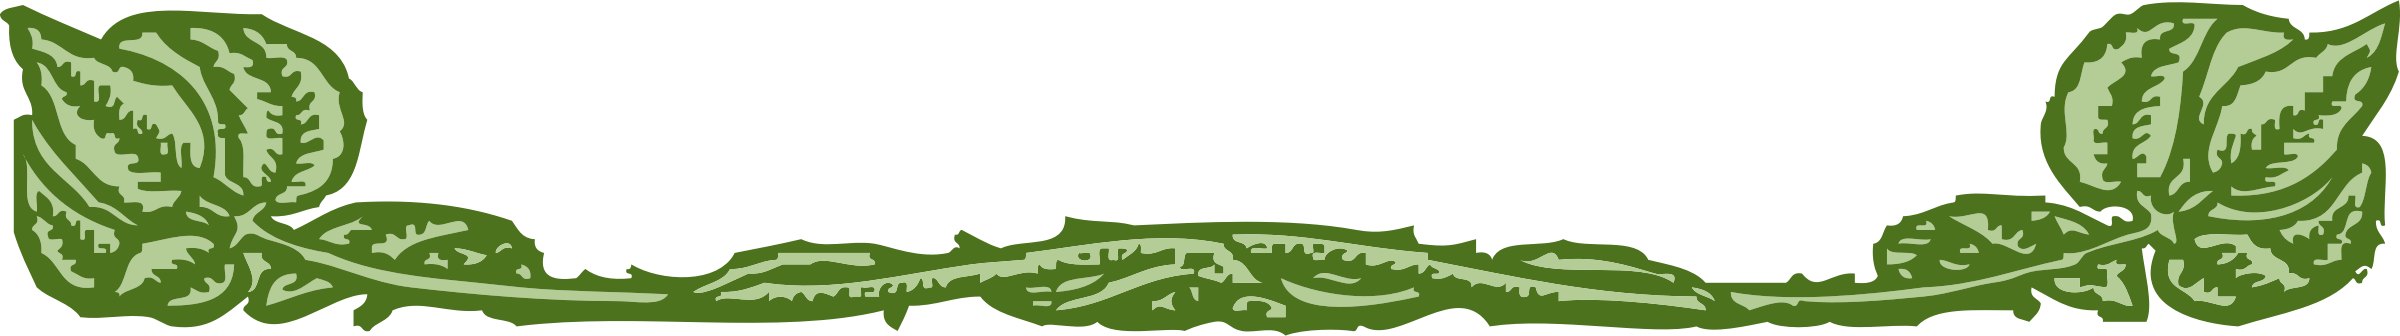 leaf clipart borders